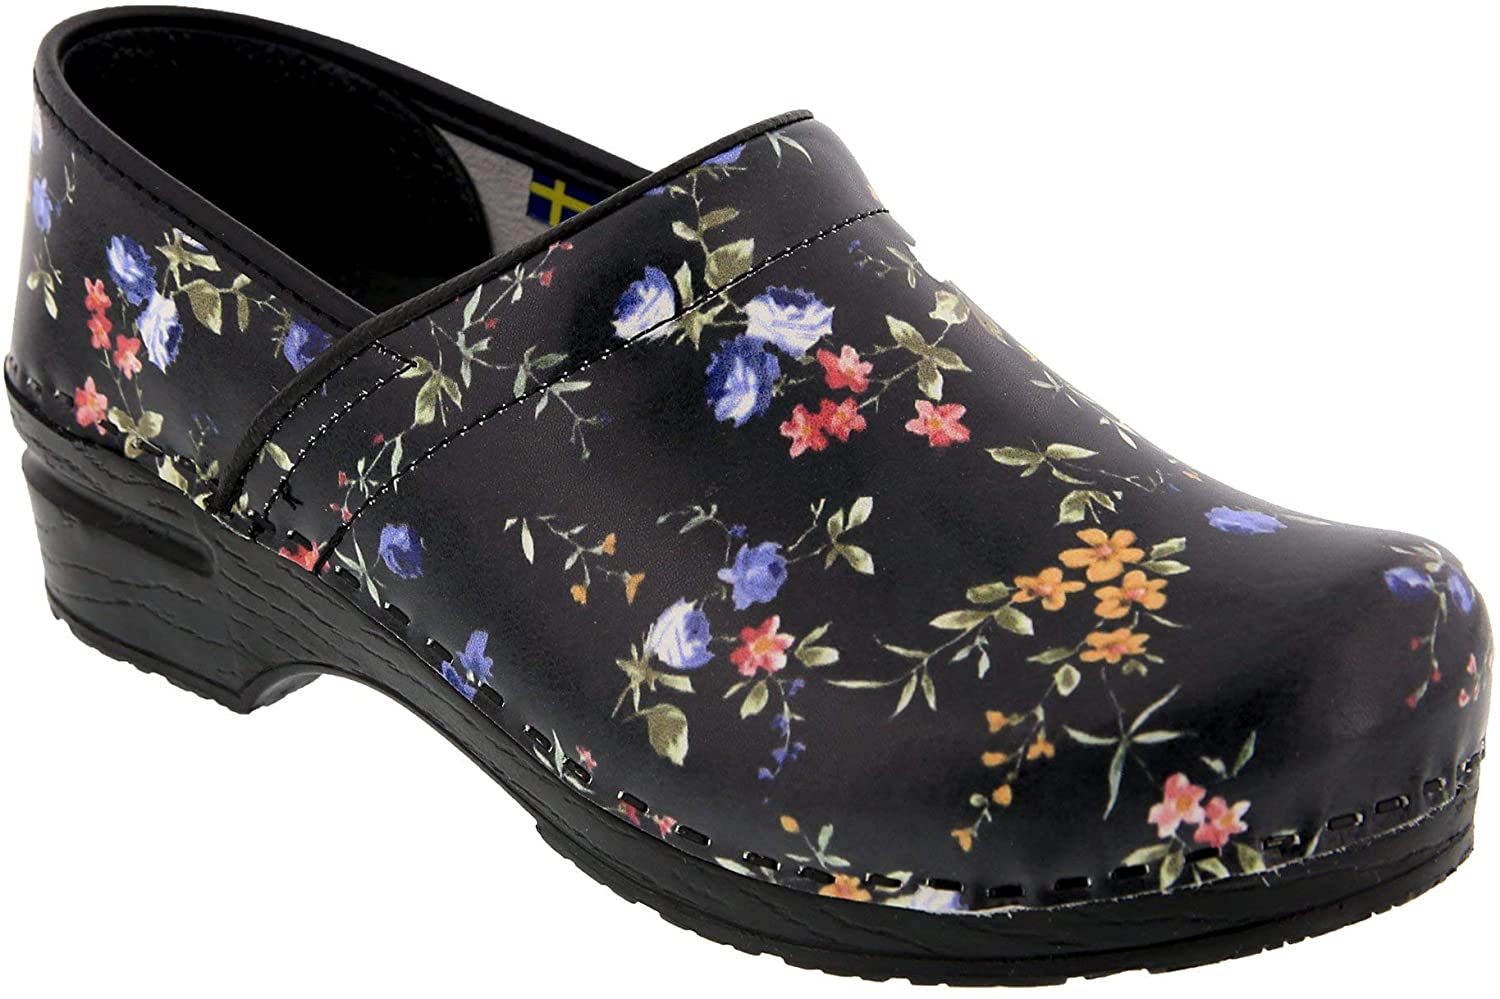 Bjork Professional Mimosa Floral Leather Clogs